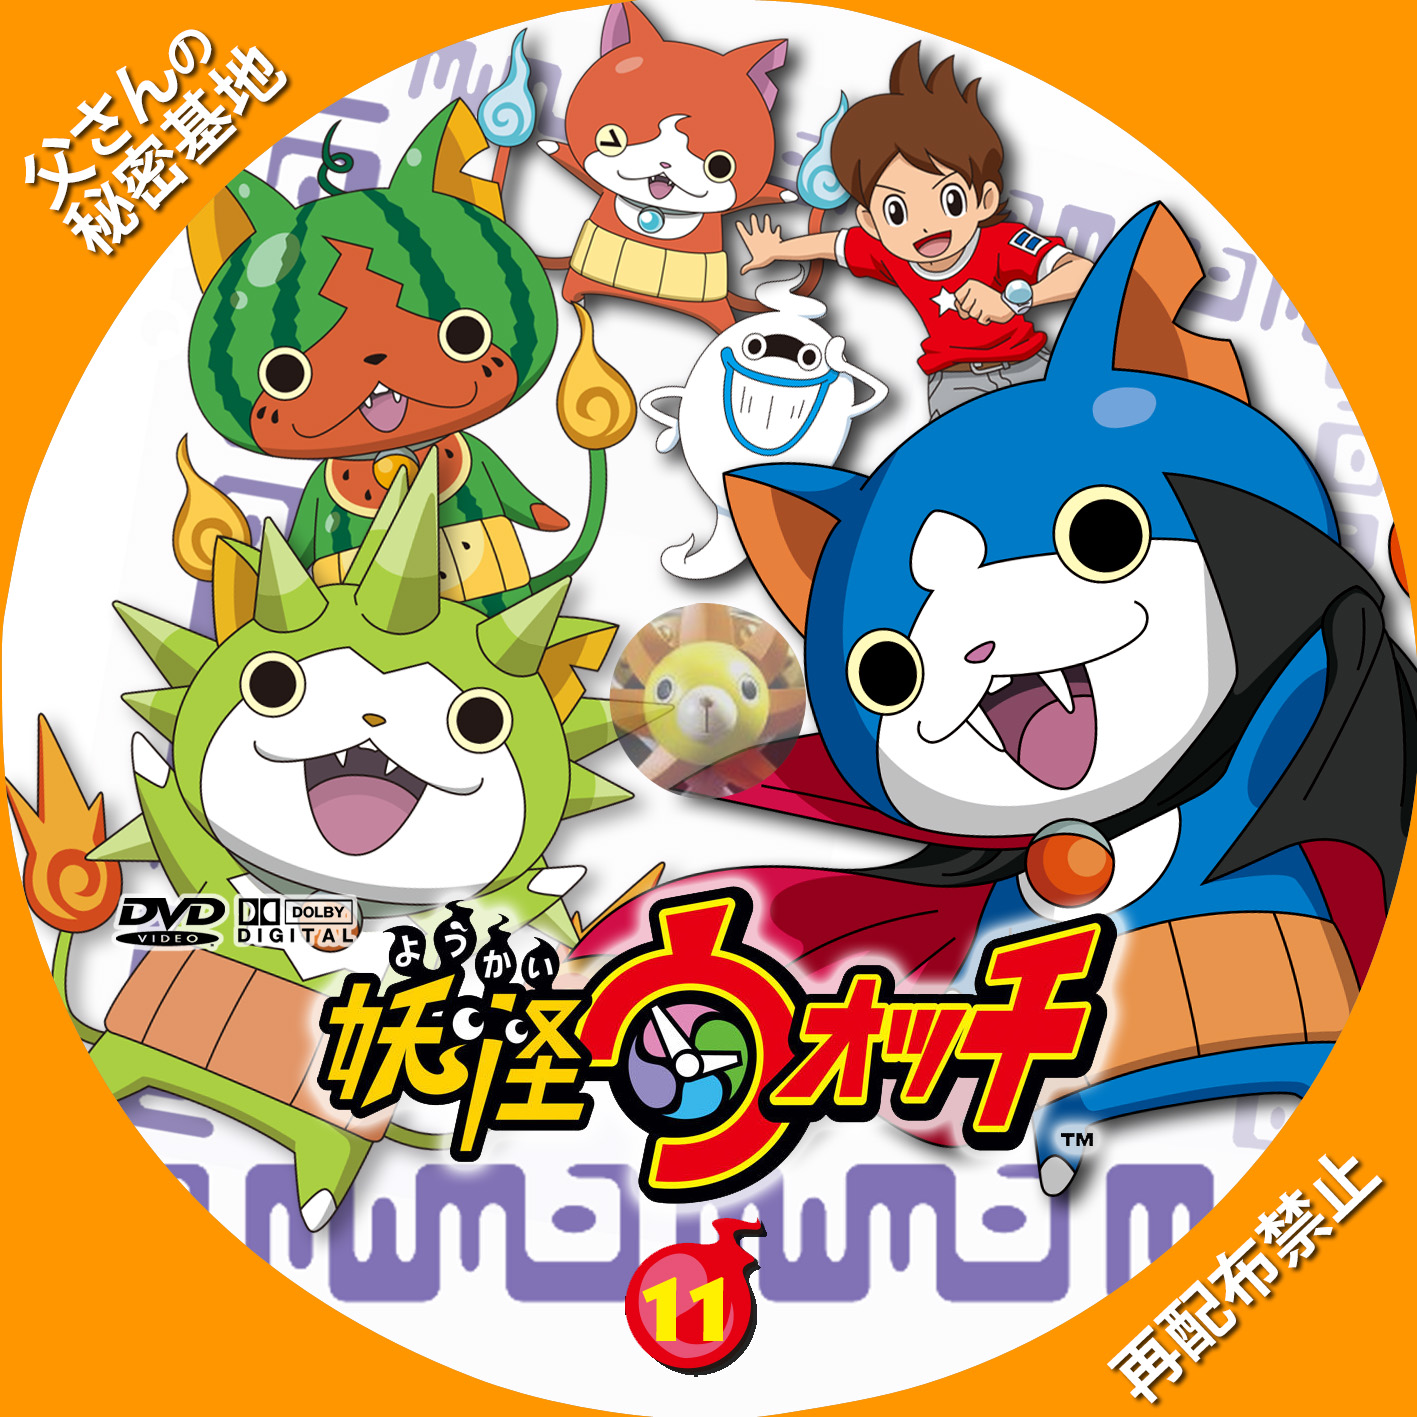 youkai-watch_11DVDb.jpg